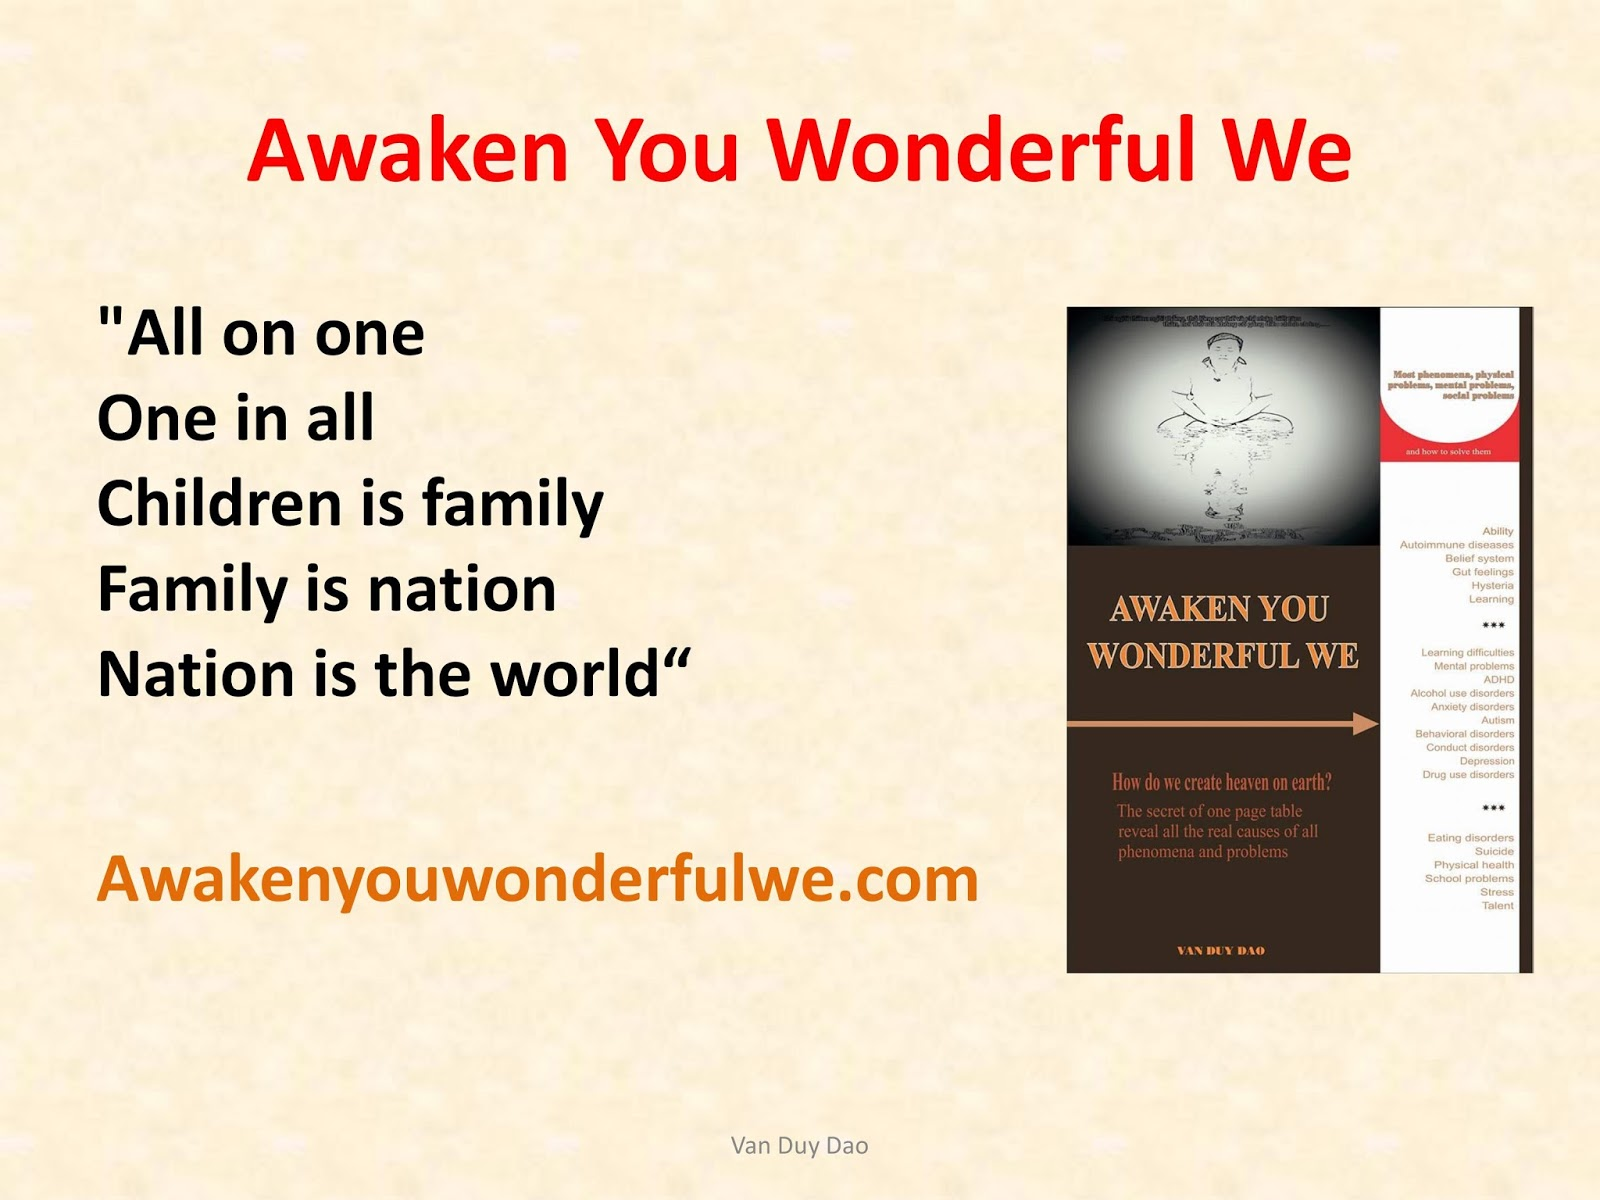 Awaken parents, teachers, leaders.